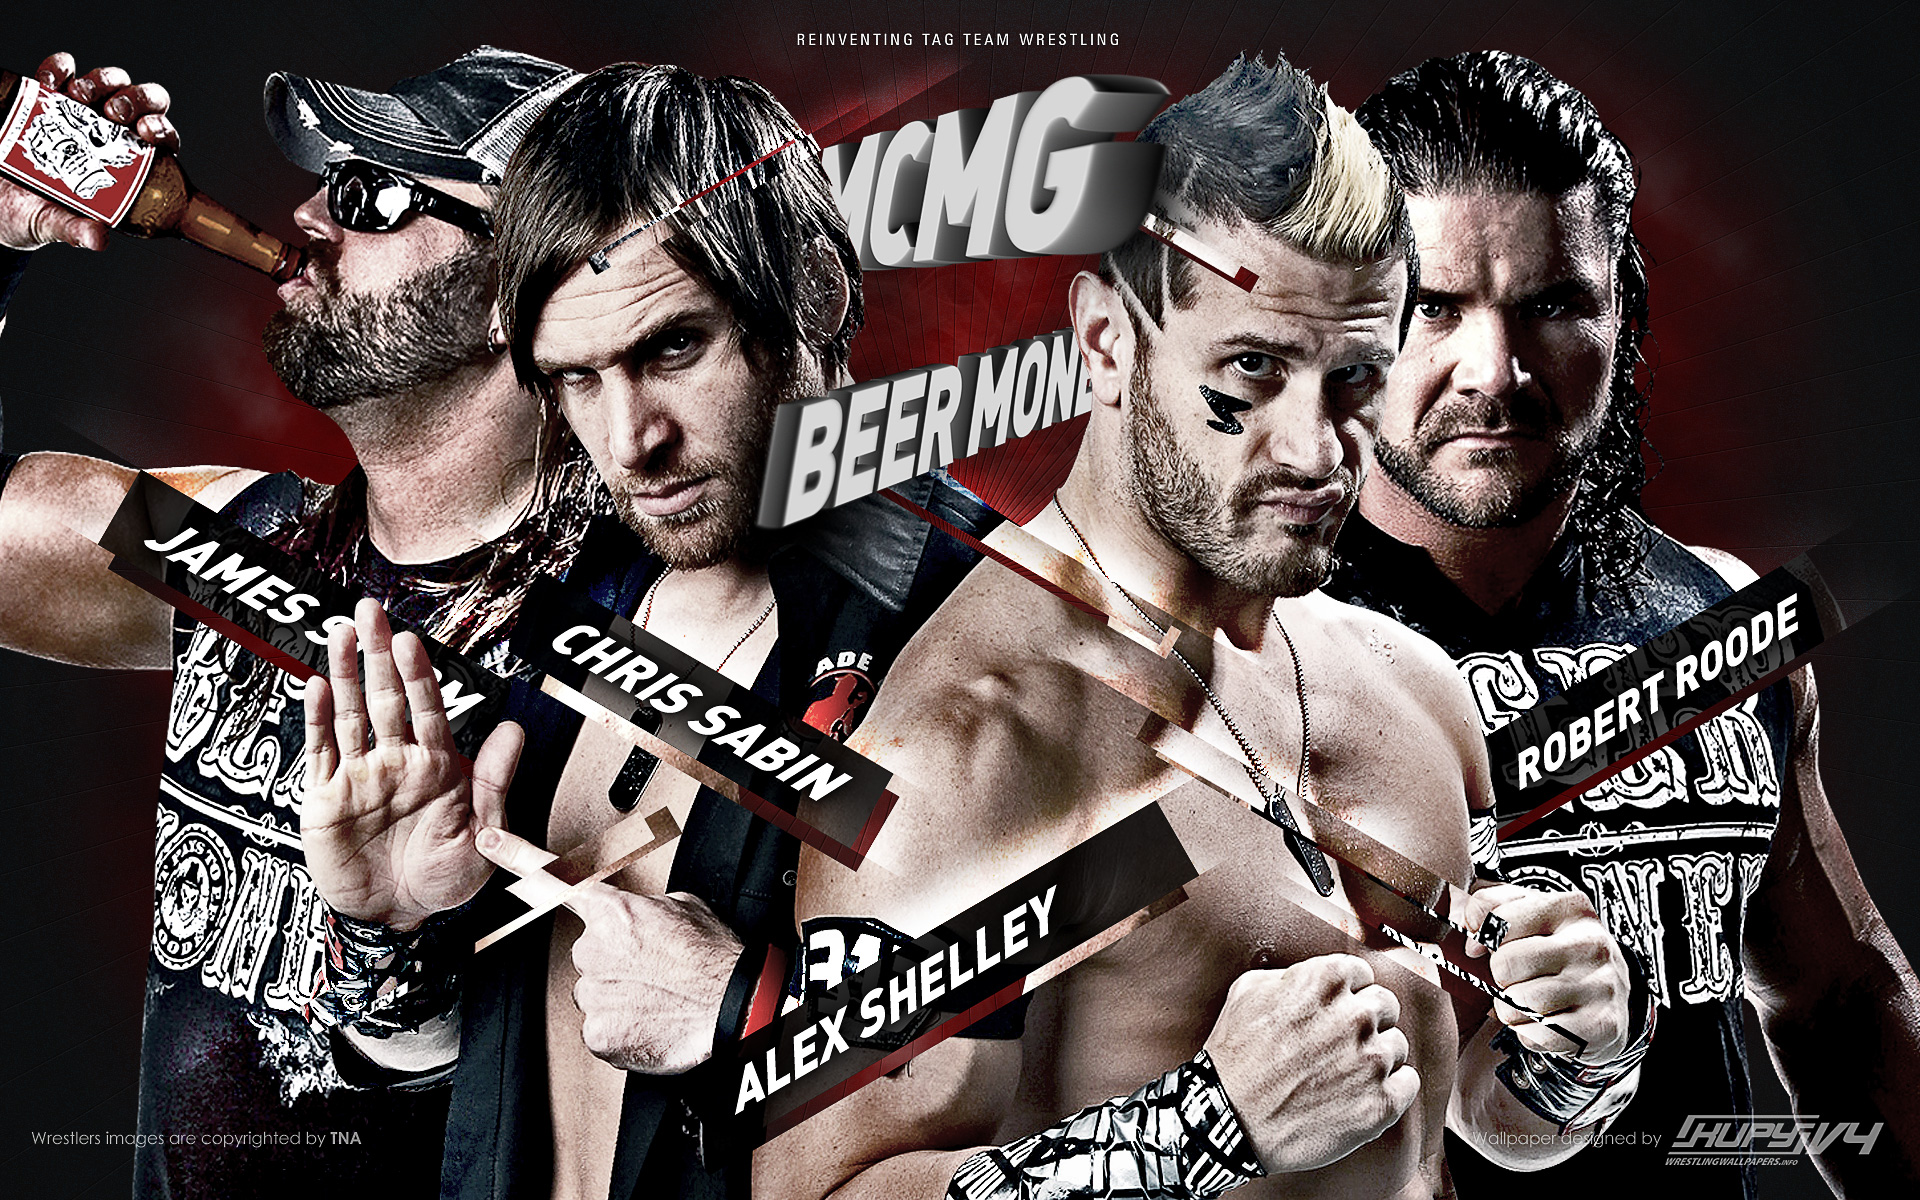 Reinventing Tag Team Wrestling Motor City Machine Guns And Beer